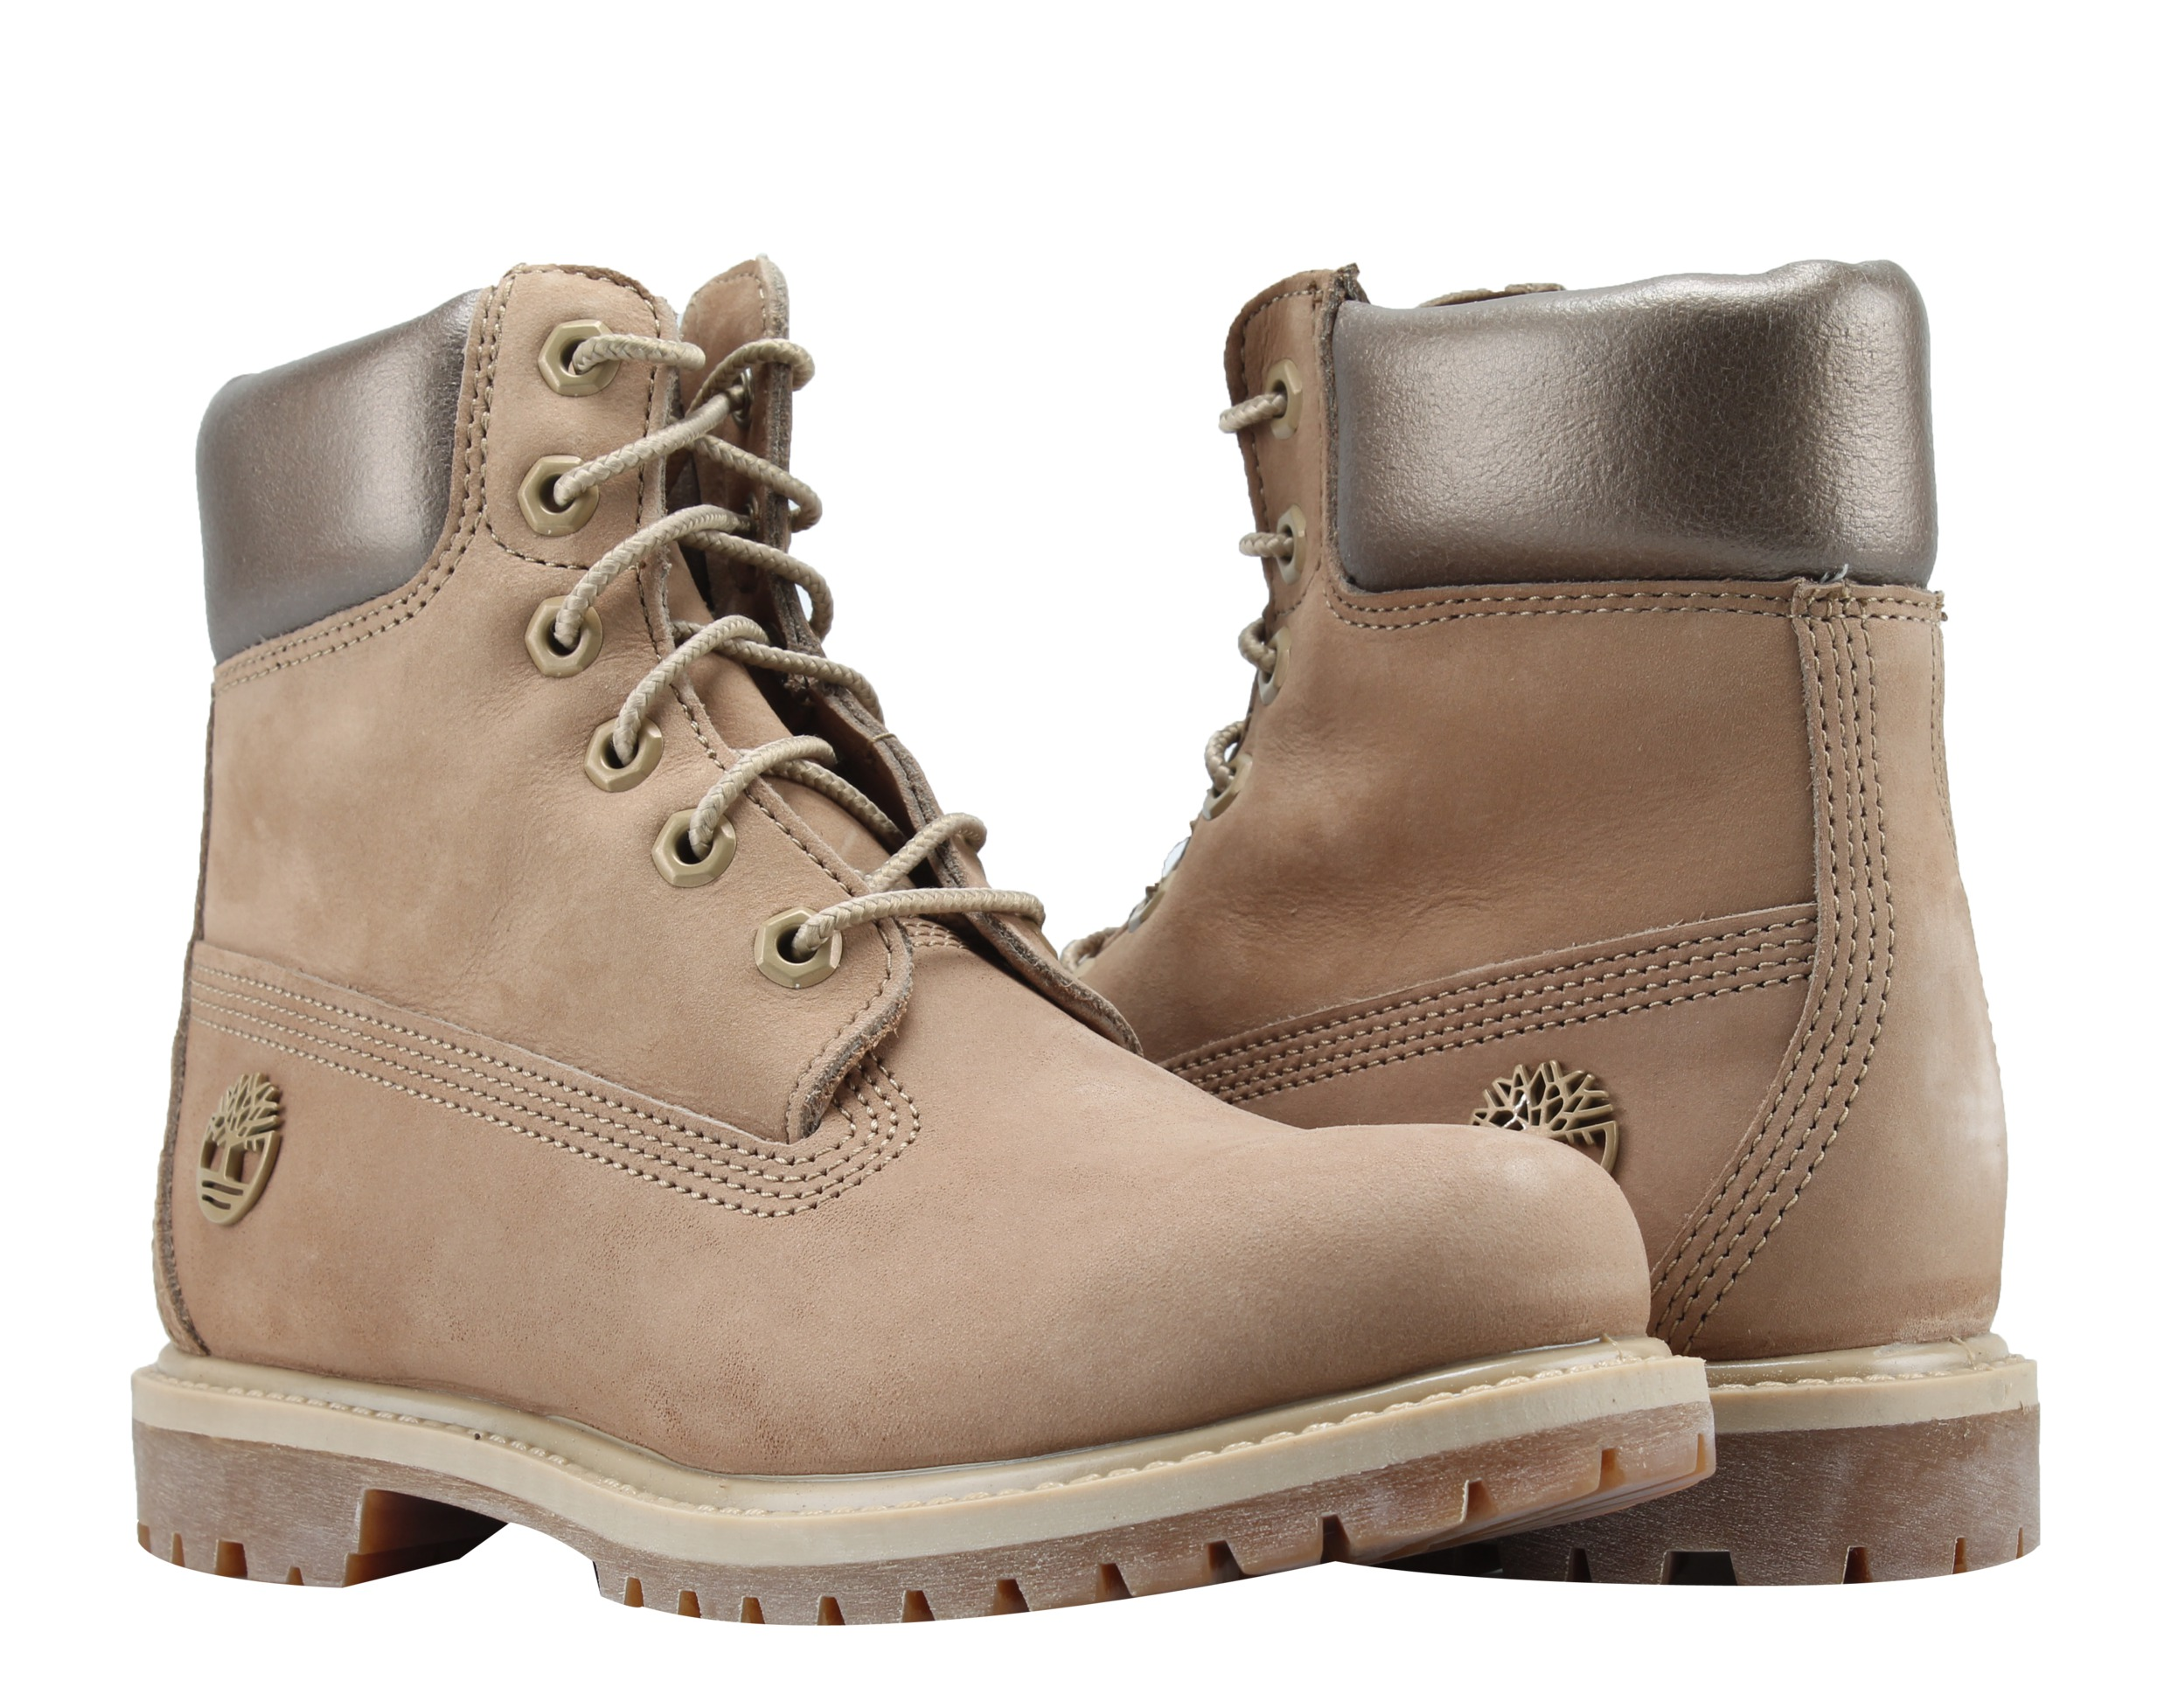 Timberland 6-Inch Premium Waterproof Natural Gold Women's Boots A1K3J by